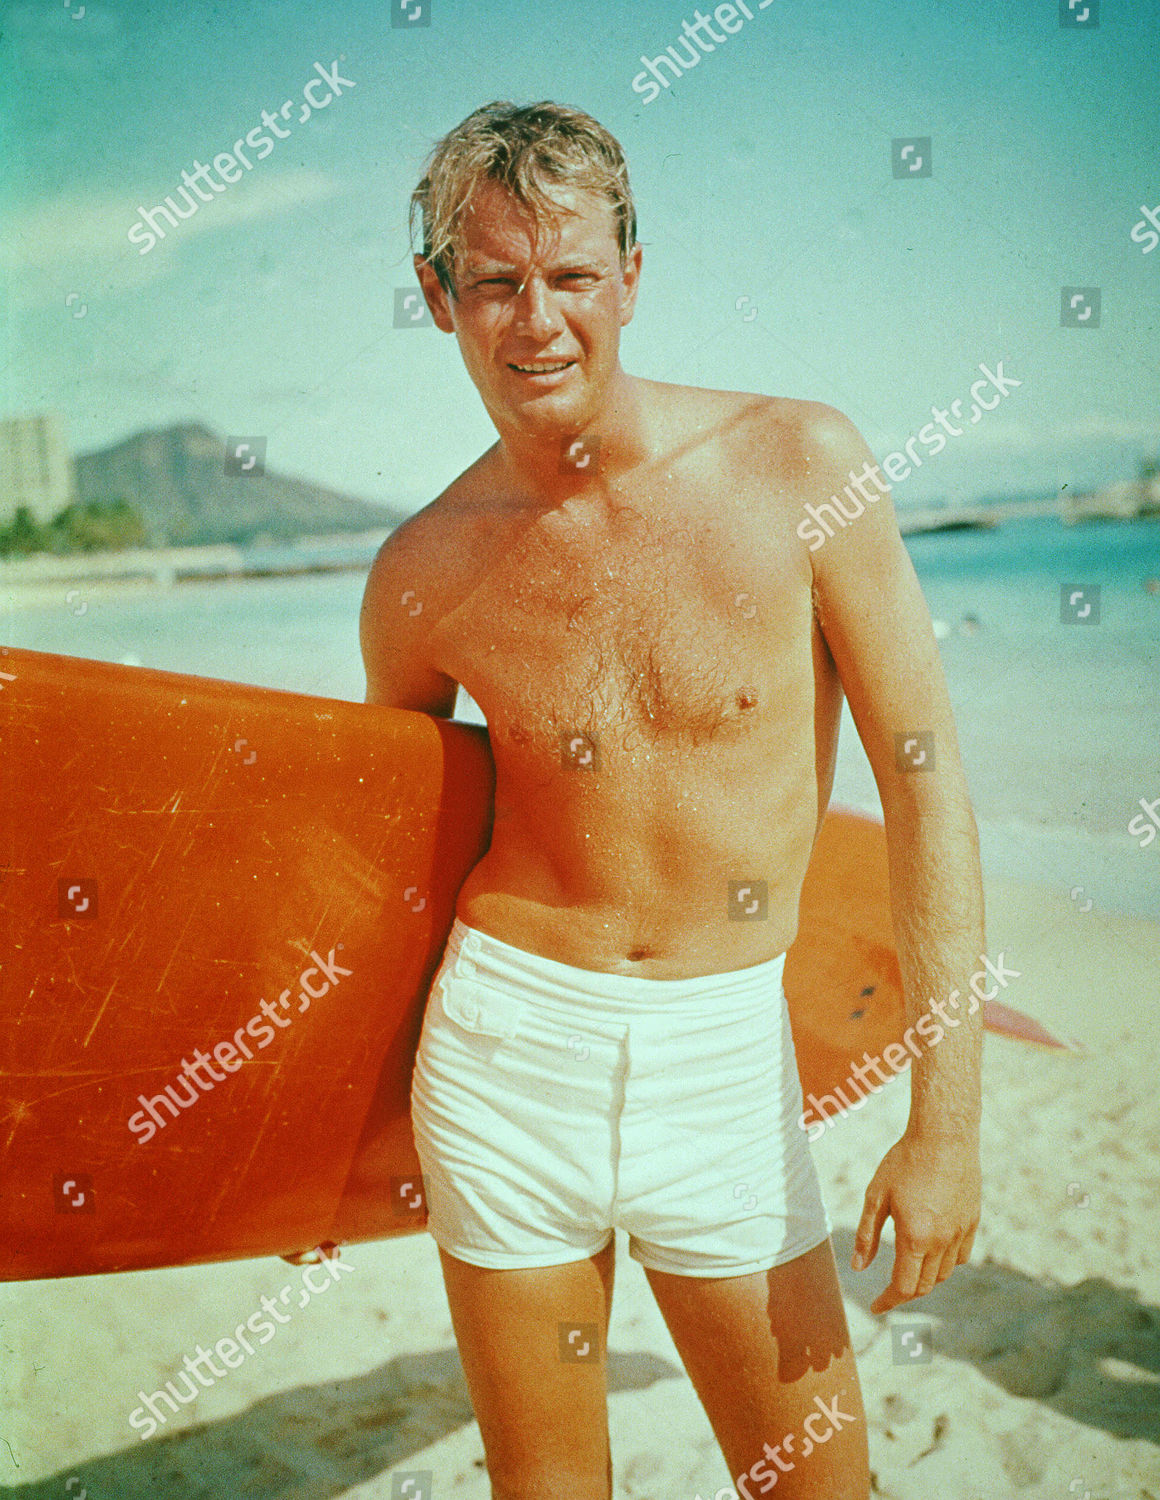 troy-donahue-shutterstock-editorial-5868